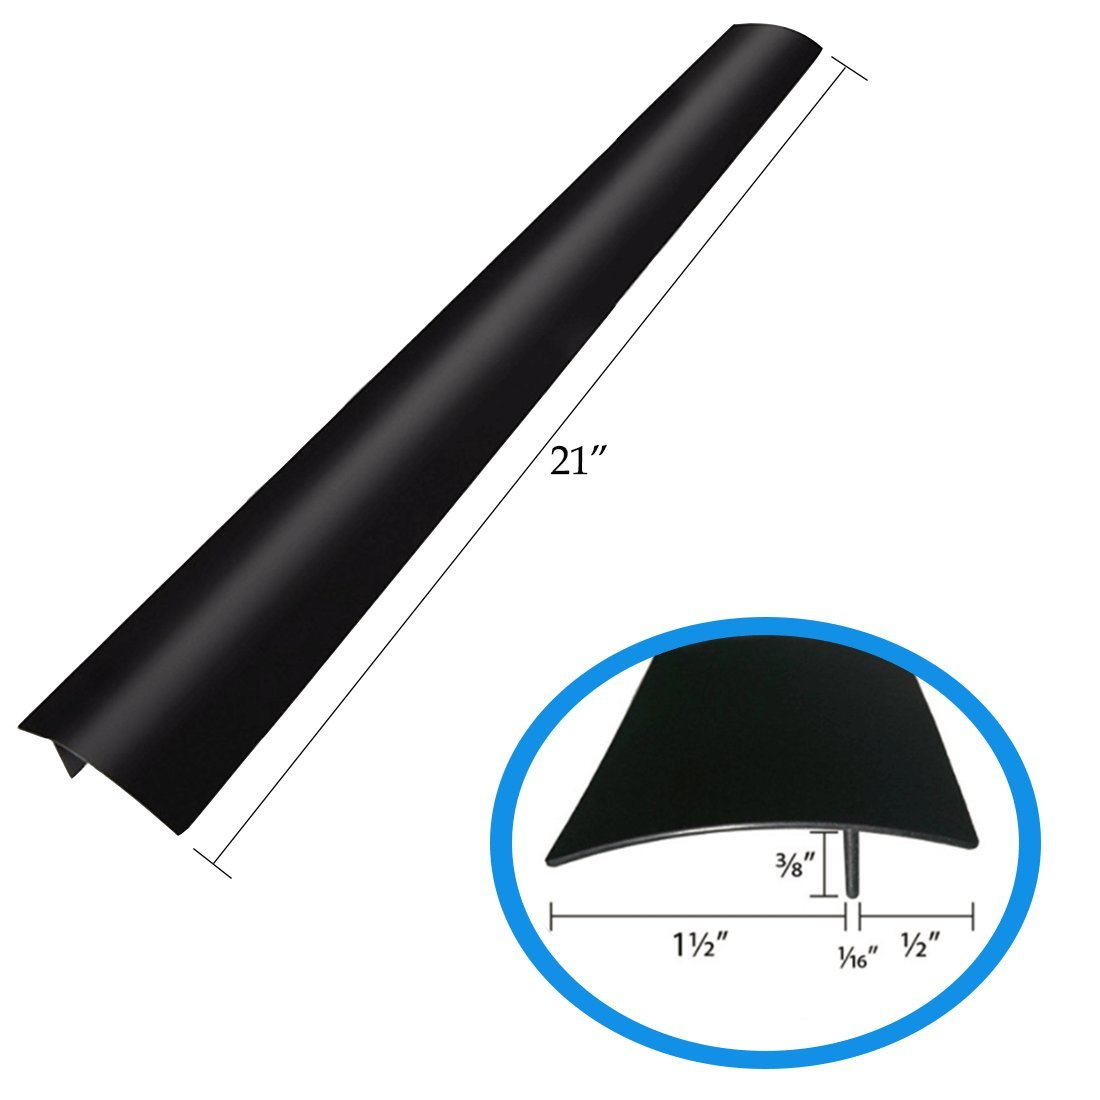 2 X Silicone Stove Gap Cover | Counter Top Stove Fills Gap Between Countertop and Stove | Seals Spills Between Stovetops, Washing Machines, Tables and more - Glossy Black BecAzor ERa-153